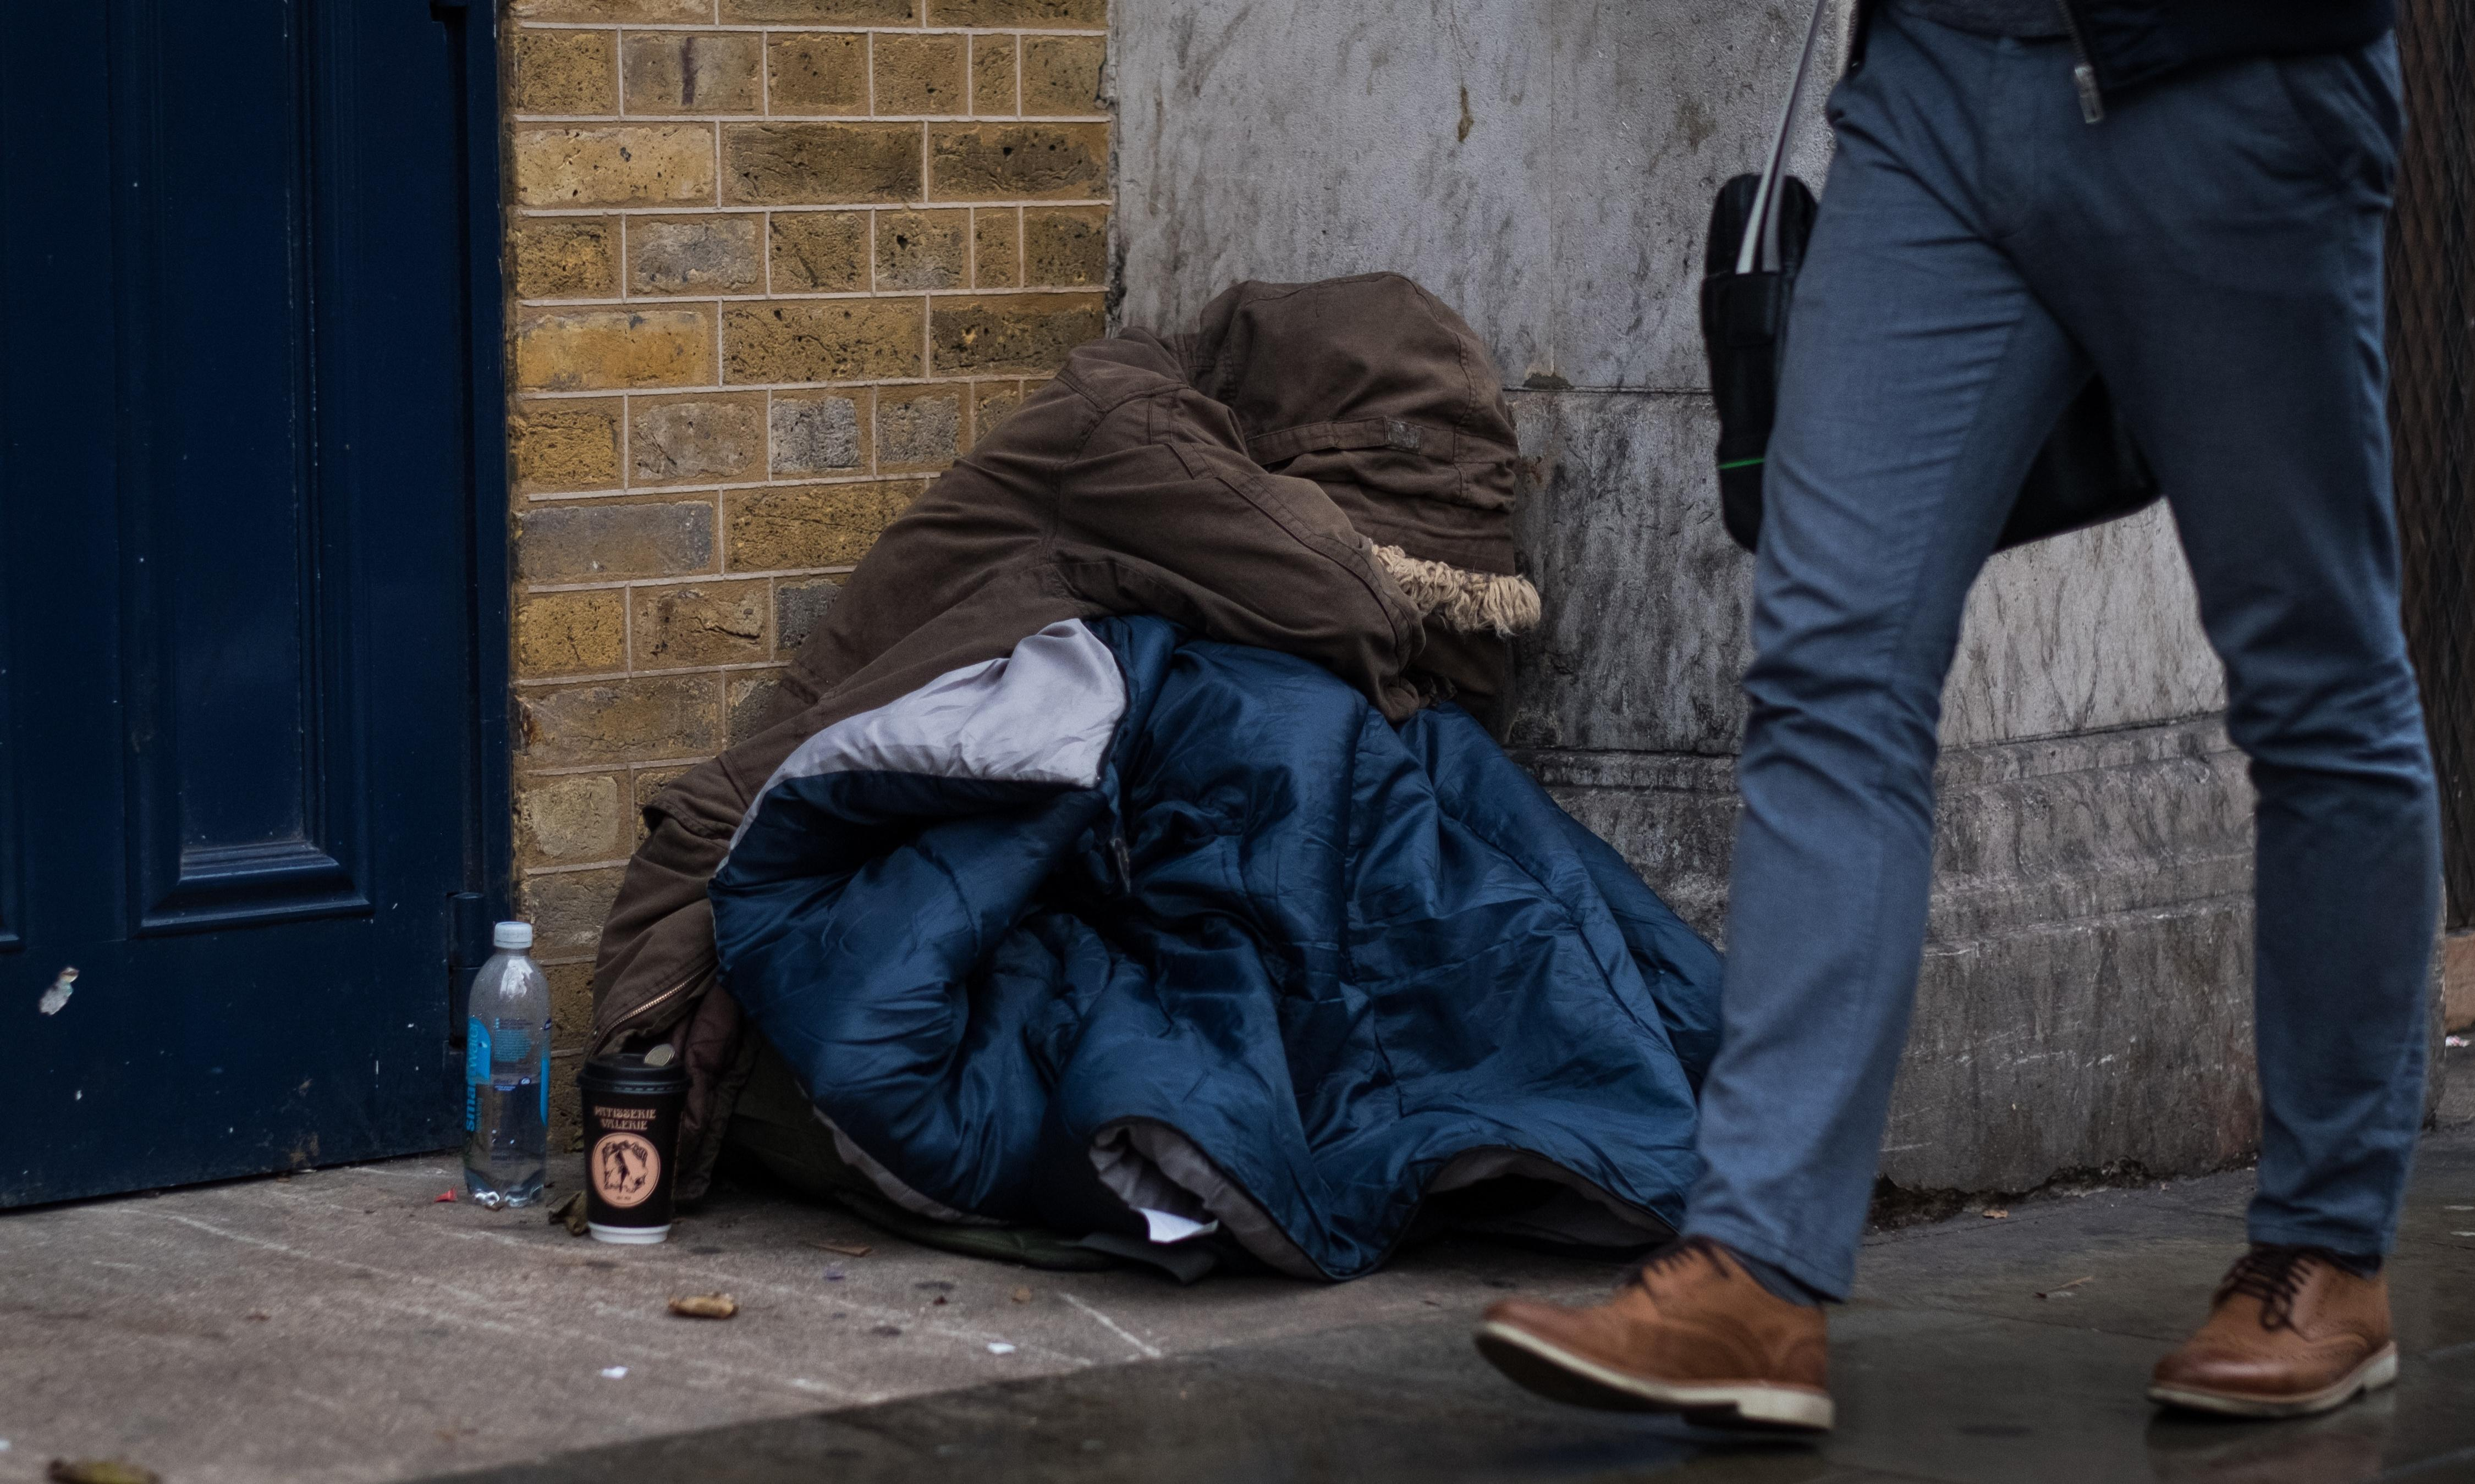 No Mark Field, it is not the homeless who are undesirable